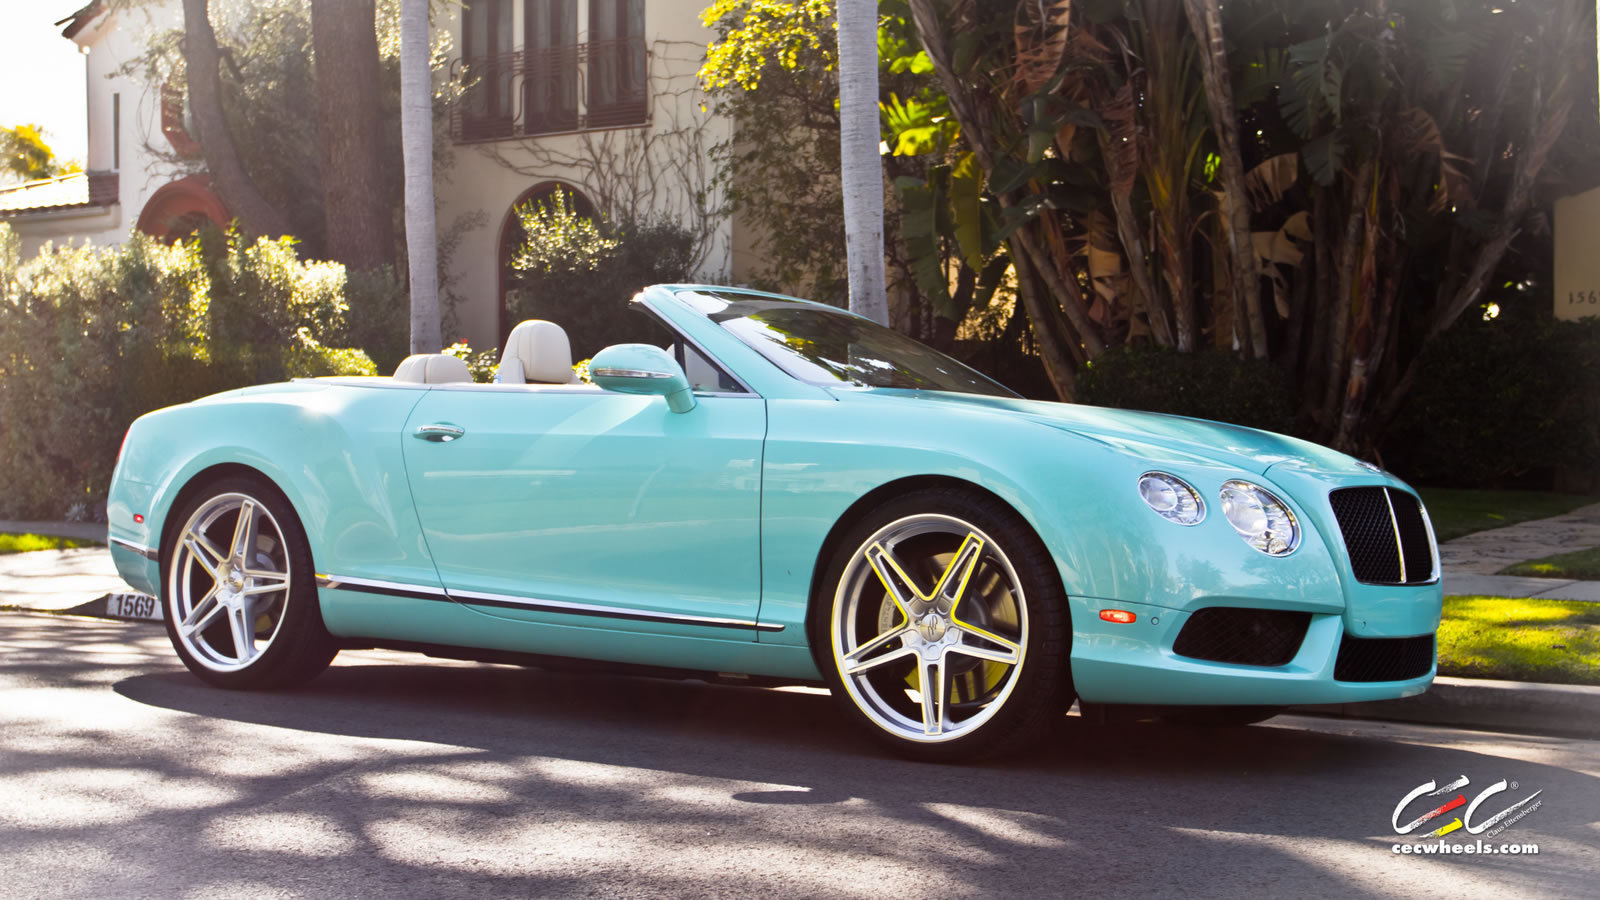 Pearlescent Car Paint >> 2013 Bentley Continental GTC Limited Edition By Bentley Beverly Hills Review - Top Speed